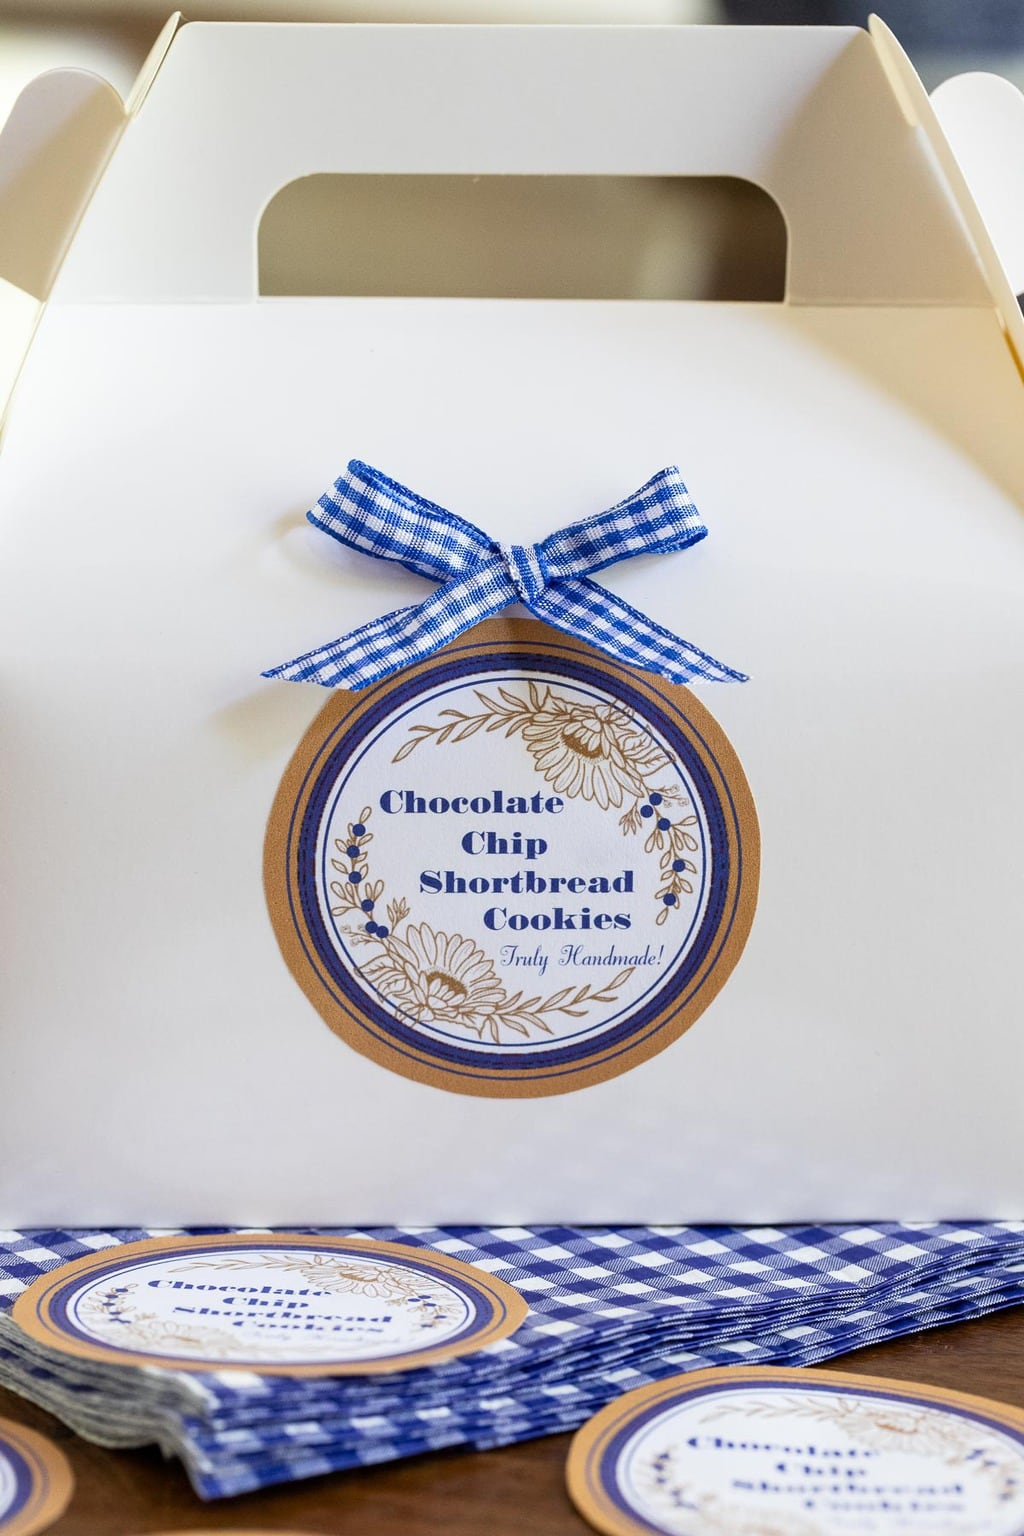 Vertical closeup photo of a white gift box with a custom Ridiculously Easy Chocolate Chip Shortbread label on the side.